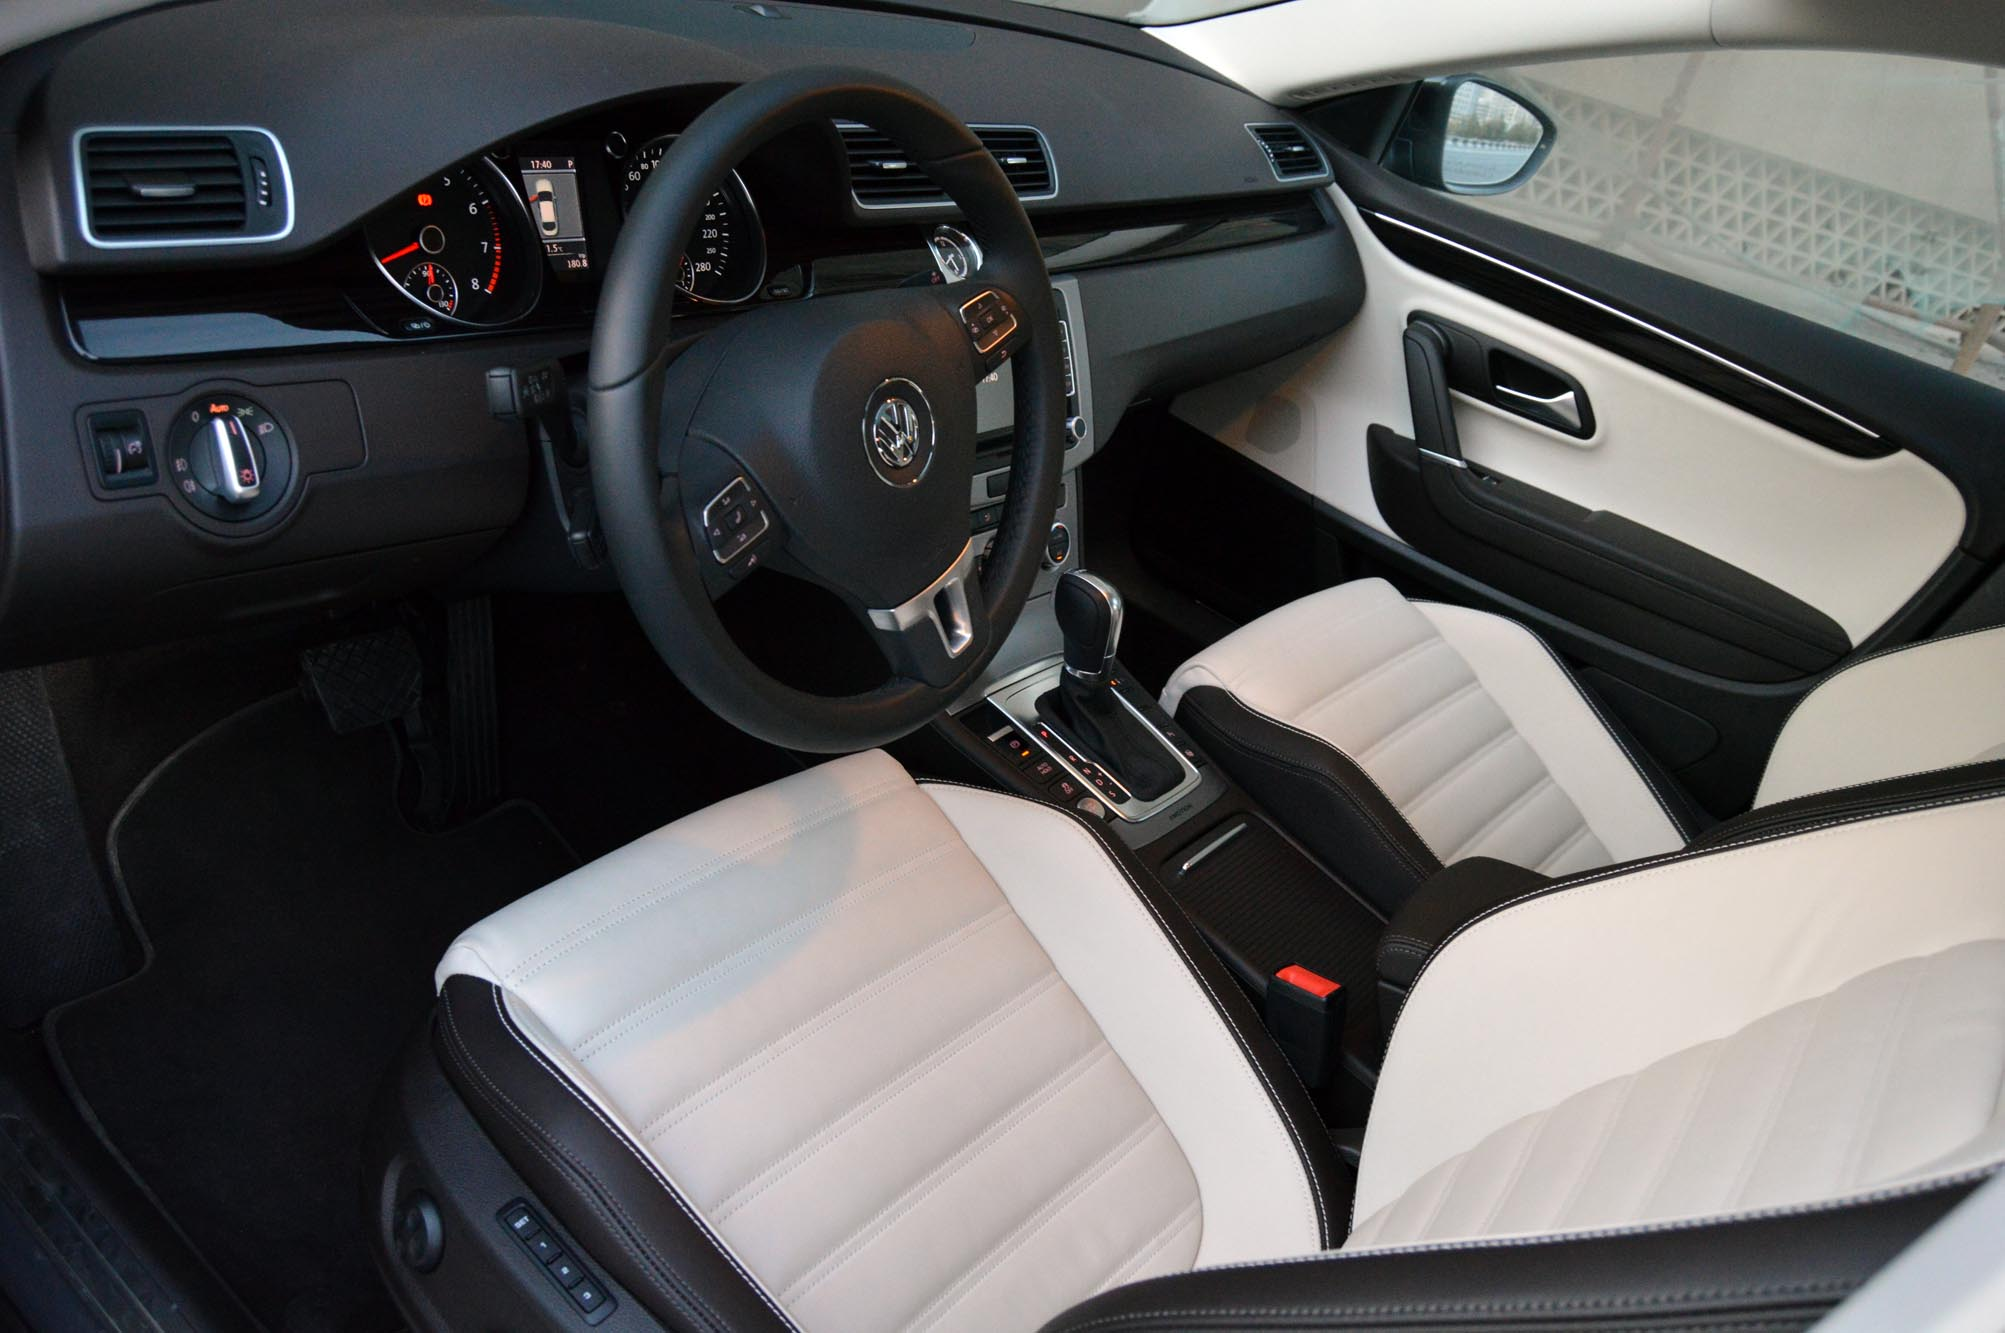 volkswagen cc 2012 review more premium more value. Black Bedroom Furniture Sets. Home Design Ideas